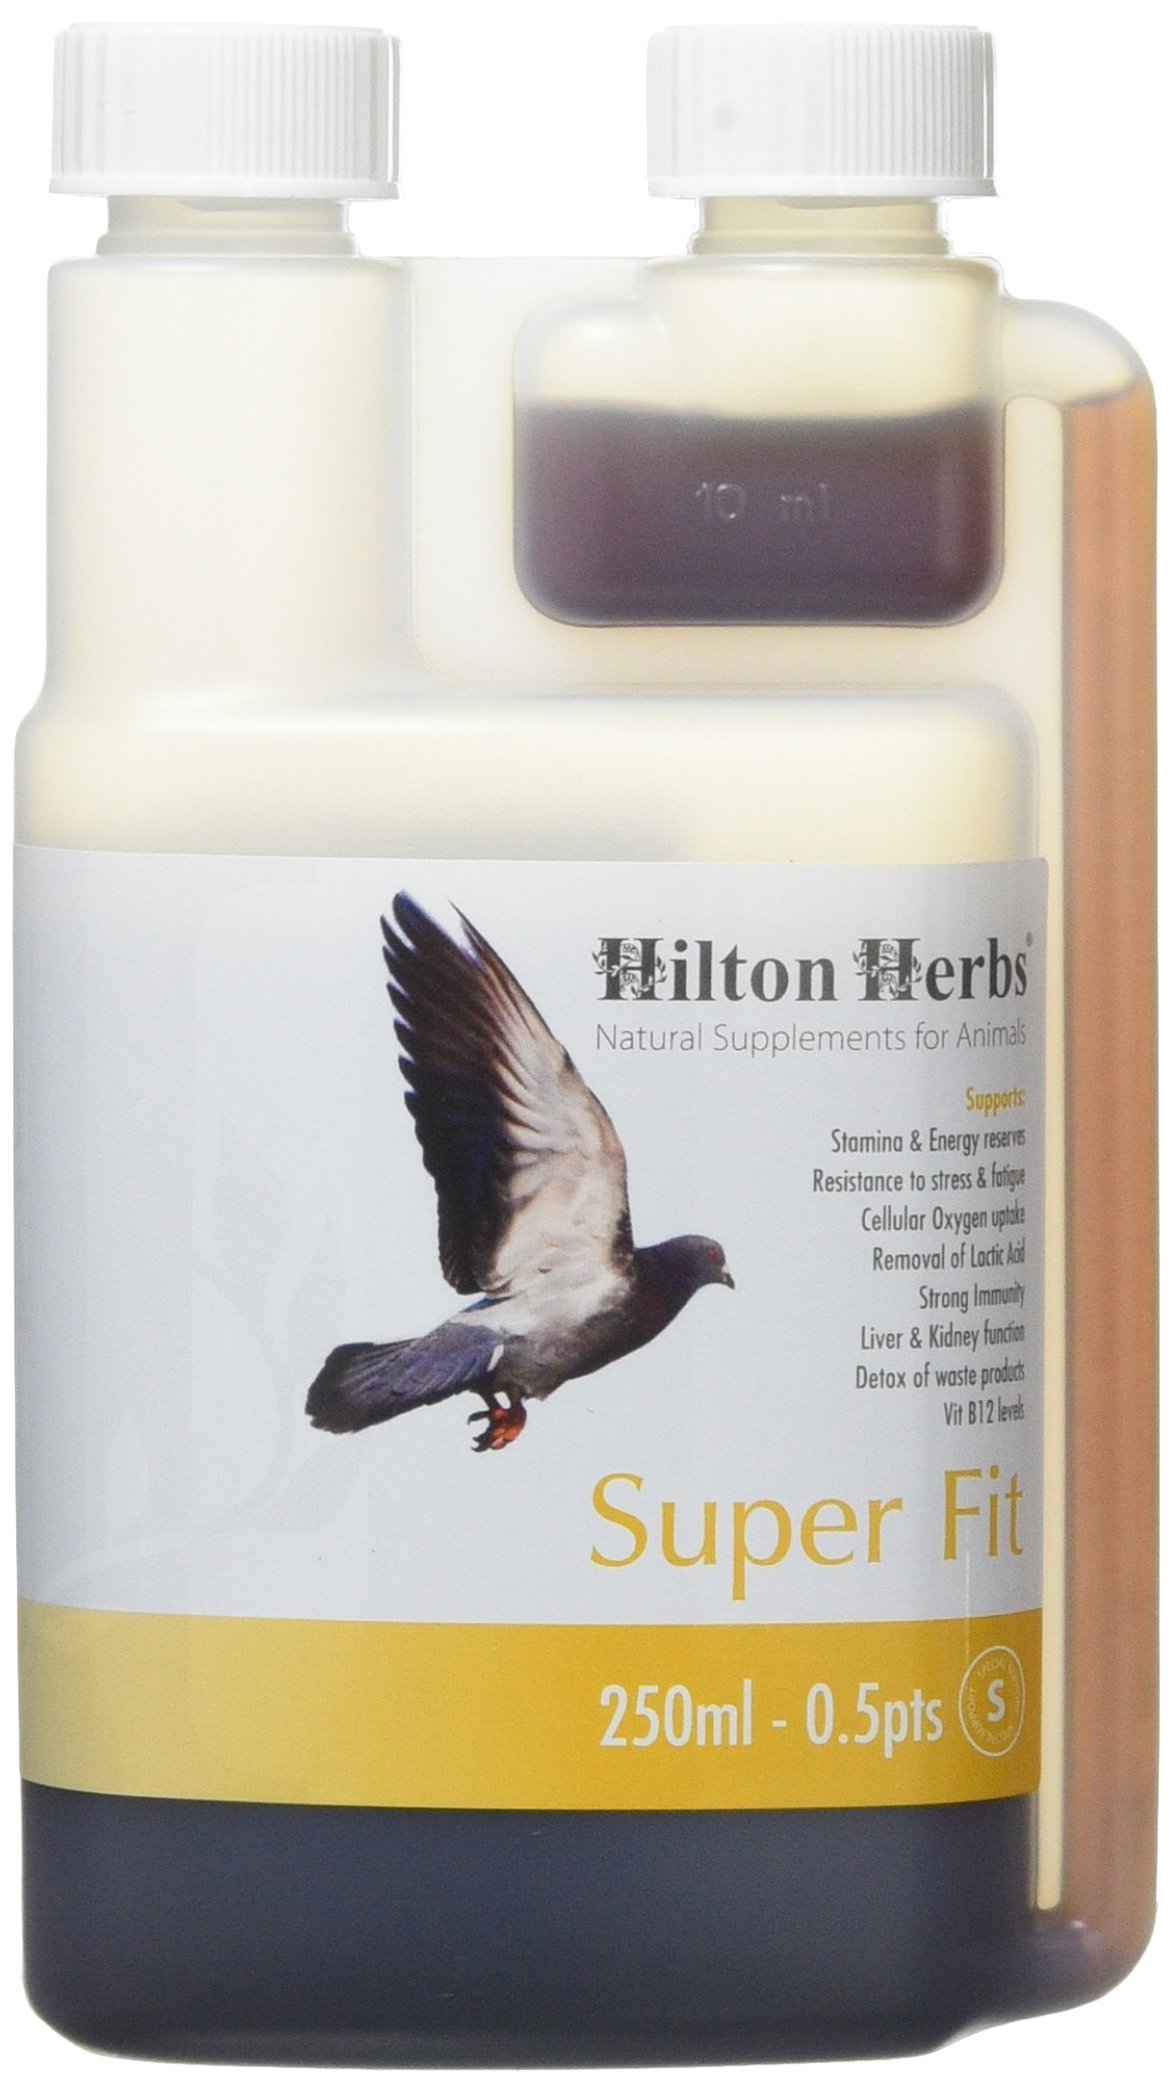 Hilton Herbs 27002 Super Fit-Natural Energy For Racing Pigeons Bottle, 0.5 Pint by Hilton Herbs